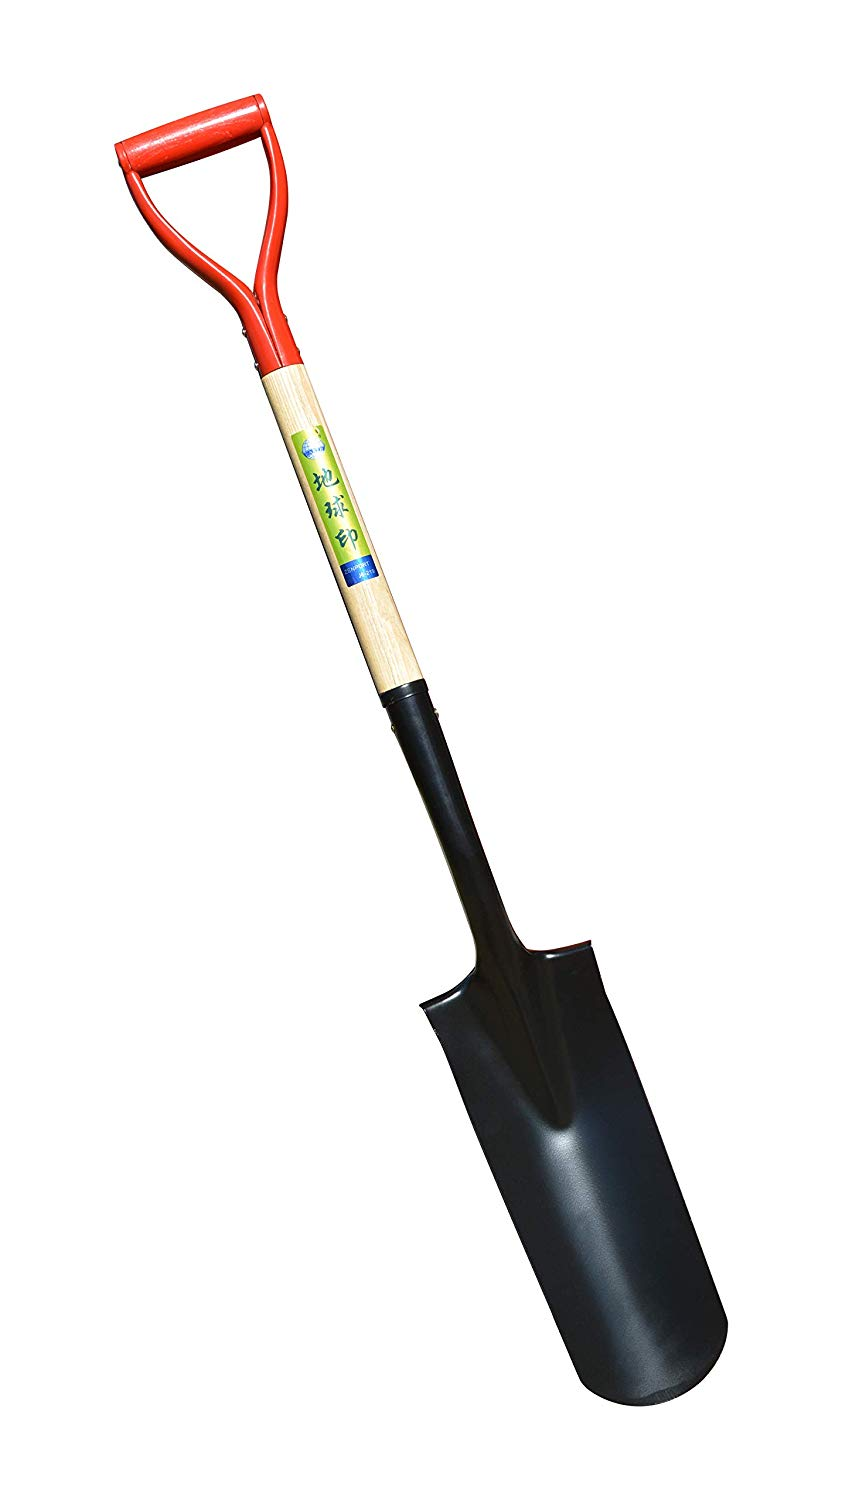 Zenport Irrigation Shovel J6-219 with 14.5-inch Spade Blade, Wood Handle